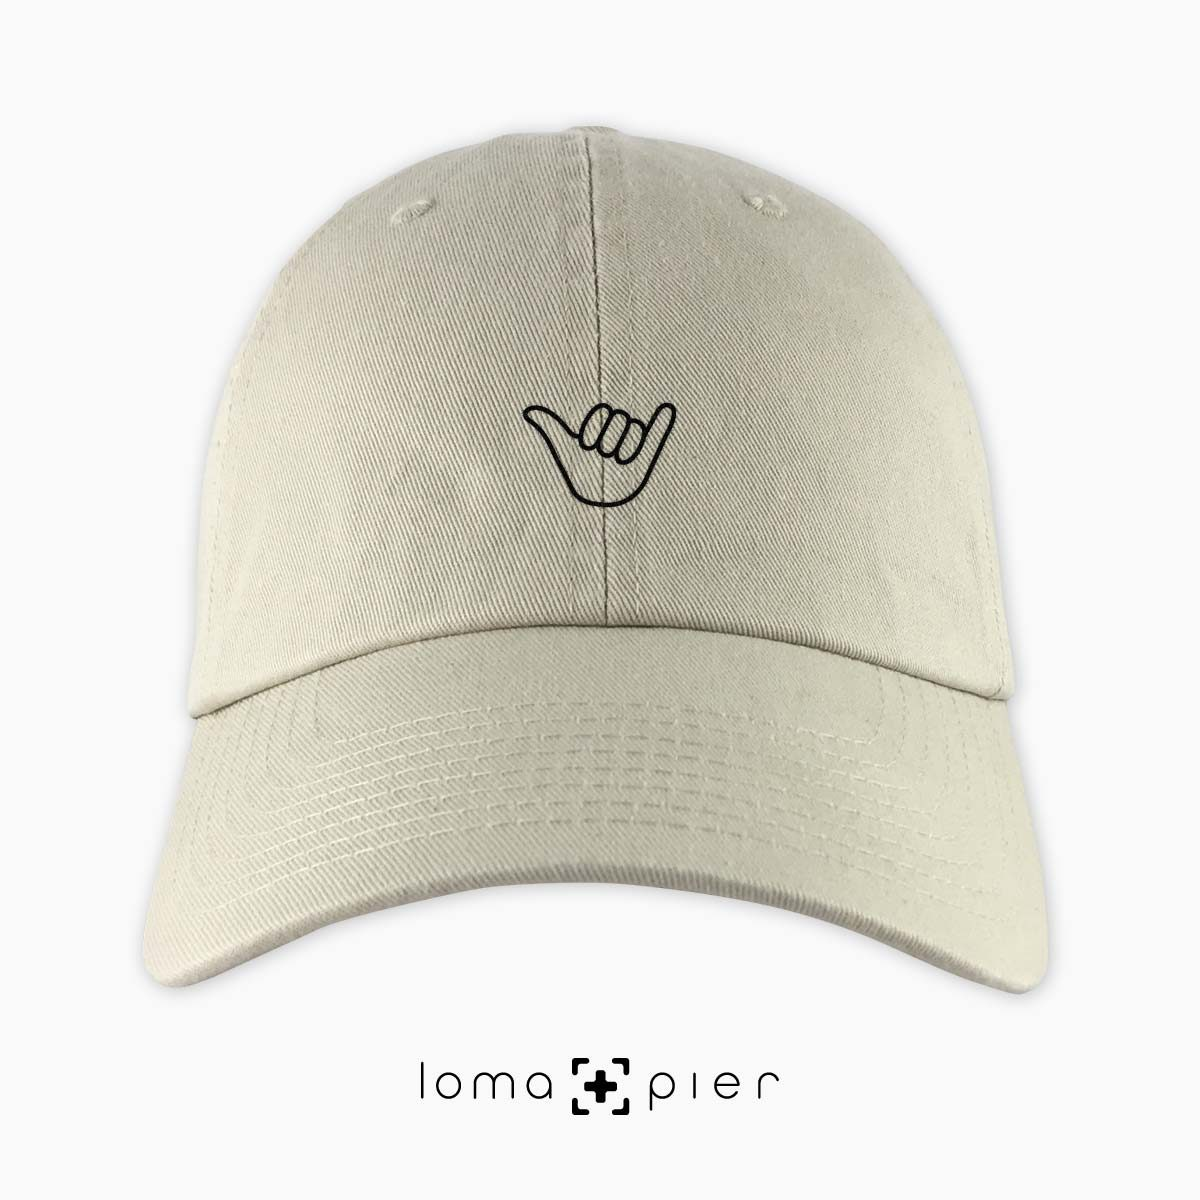 HANG LOOSE icon embroidered on a khaki unstructured dad hat by loma+pier hat store made in the USA